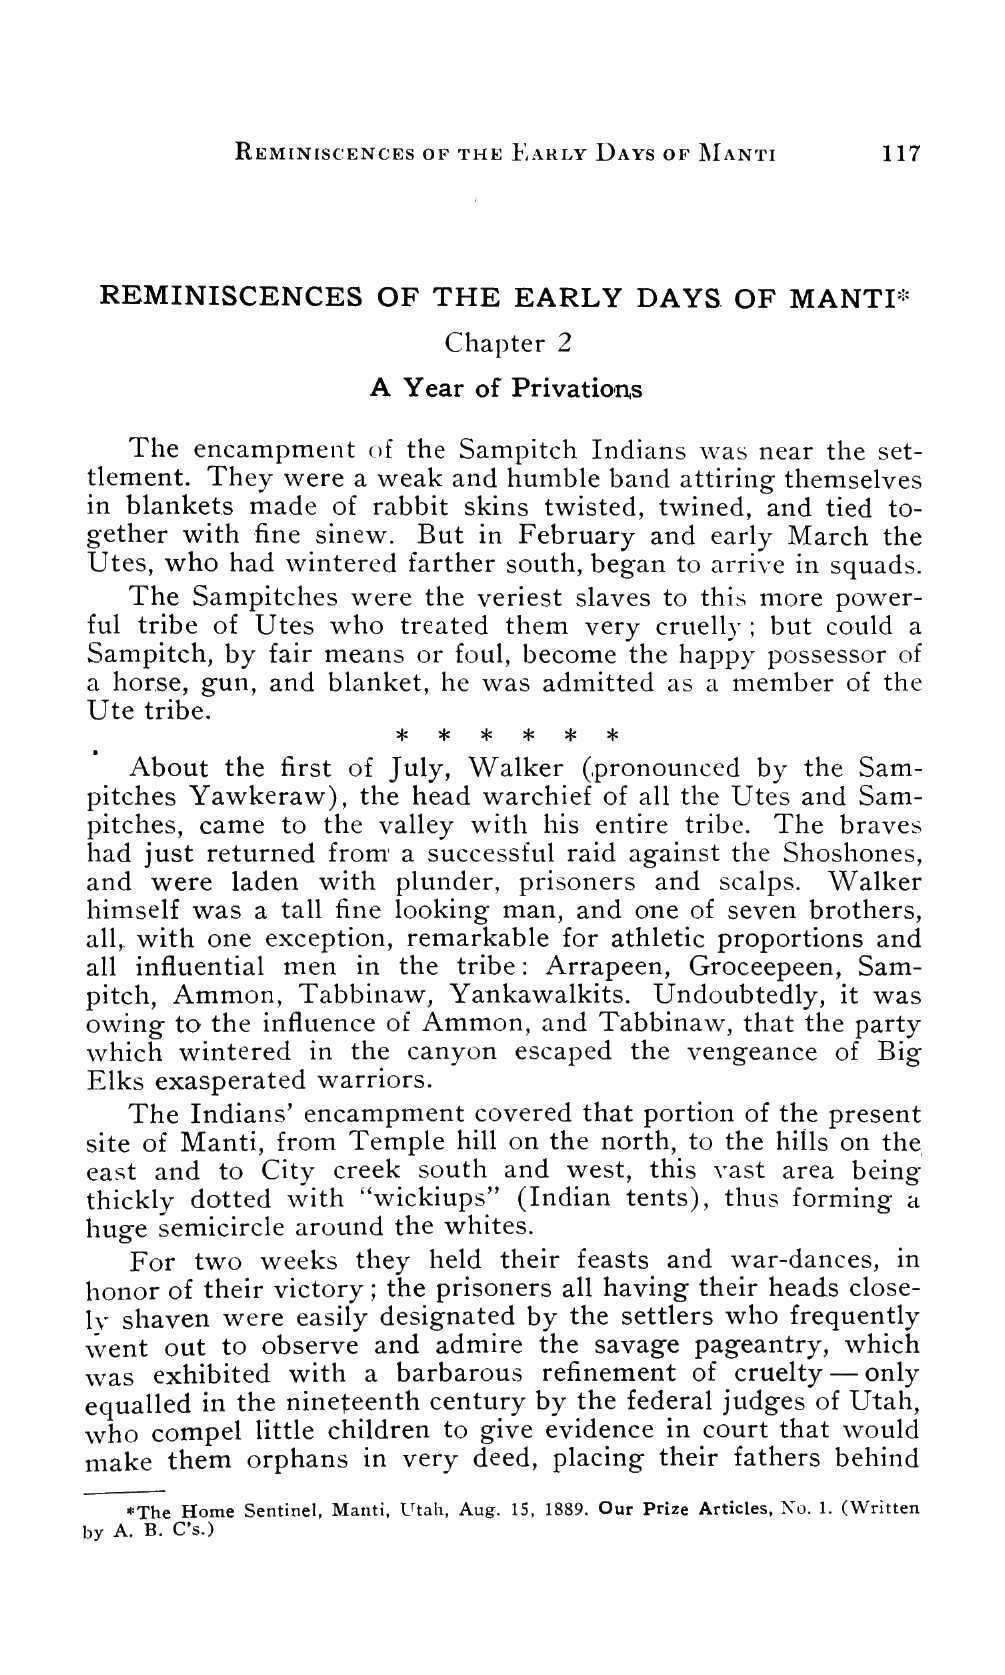 Page 116 of Reminiscences of the Early Days of Manti